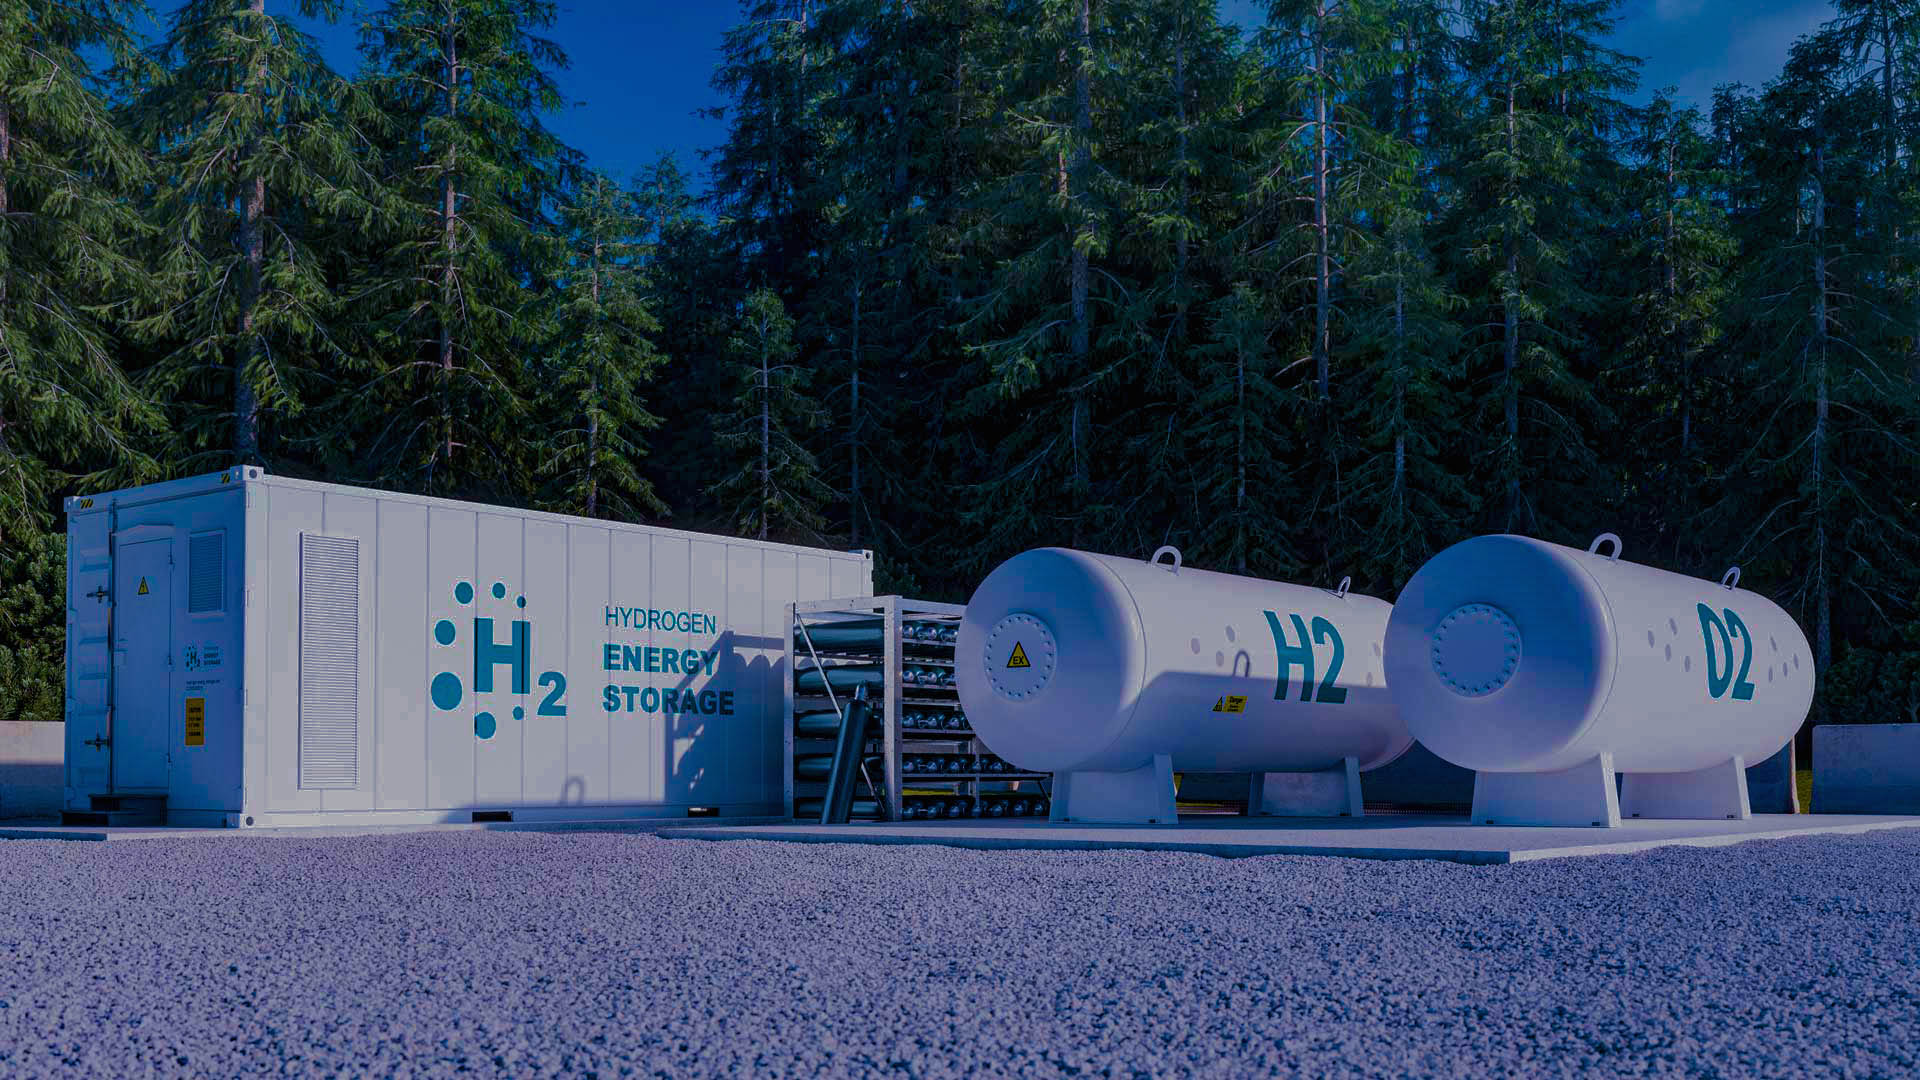 Russia to substitute decline in gas exports to Europe by 'blue' hydrogen, says Gazprom